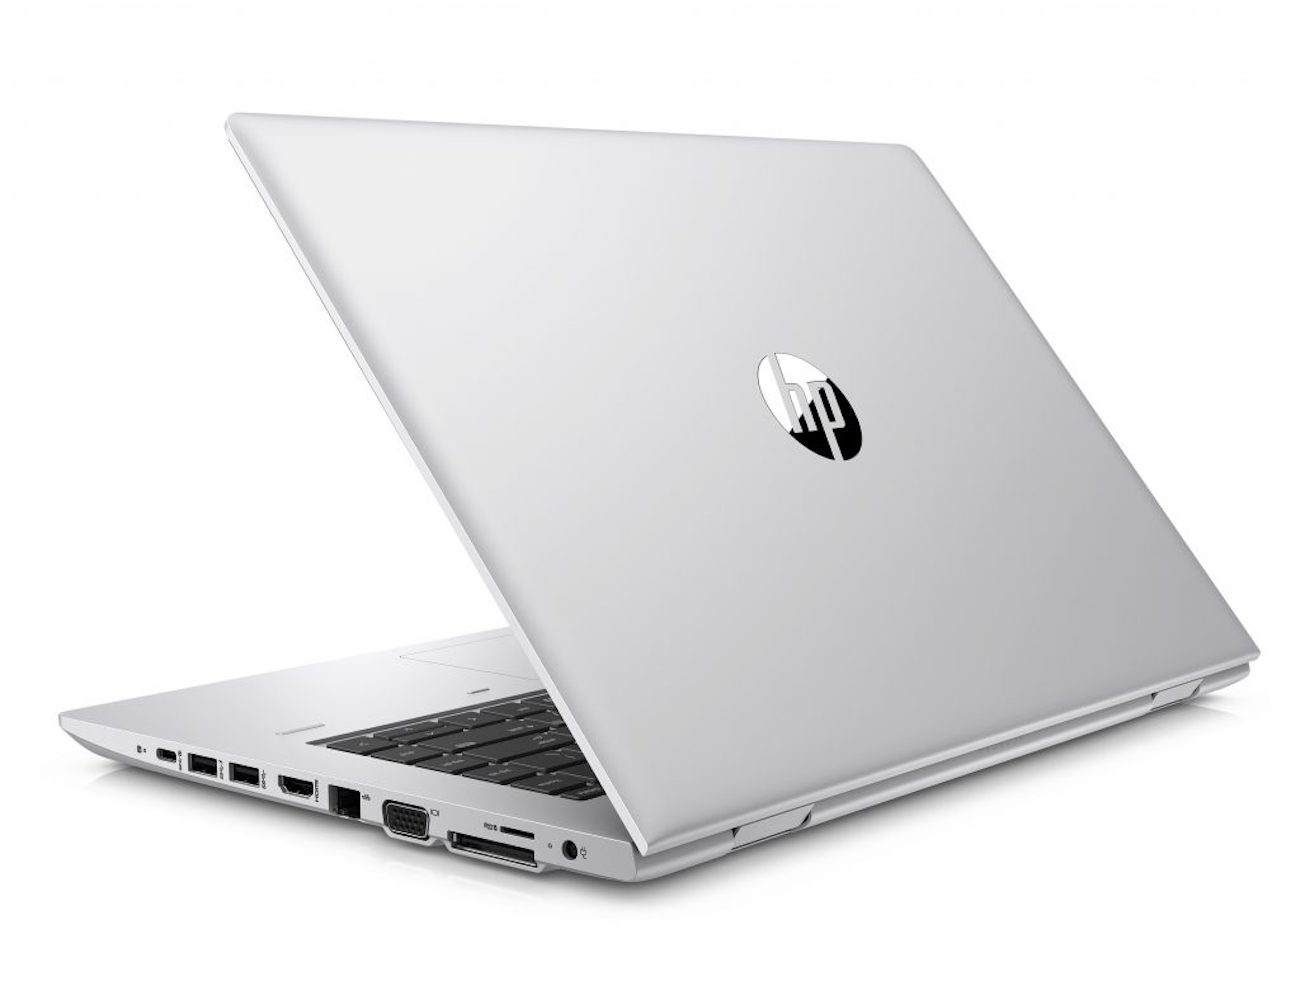 HP ProBook 645 G4 Notebook